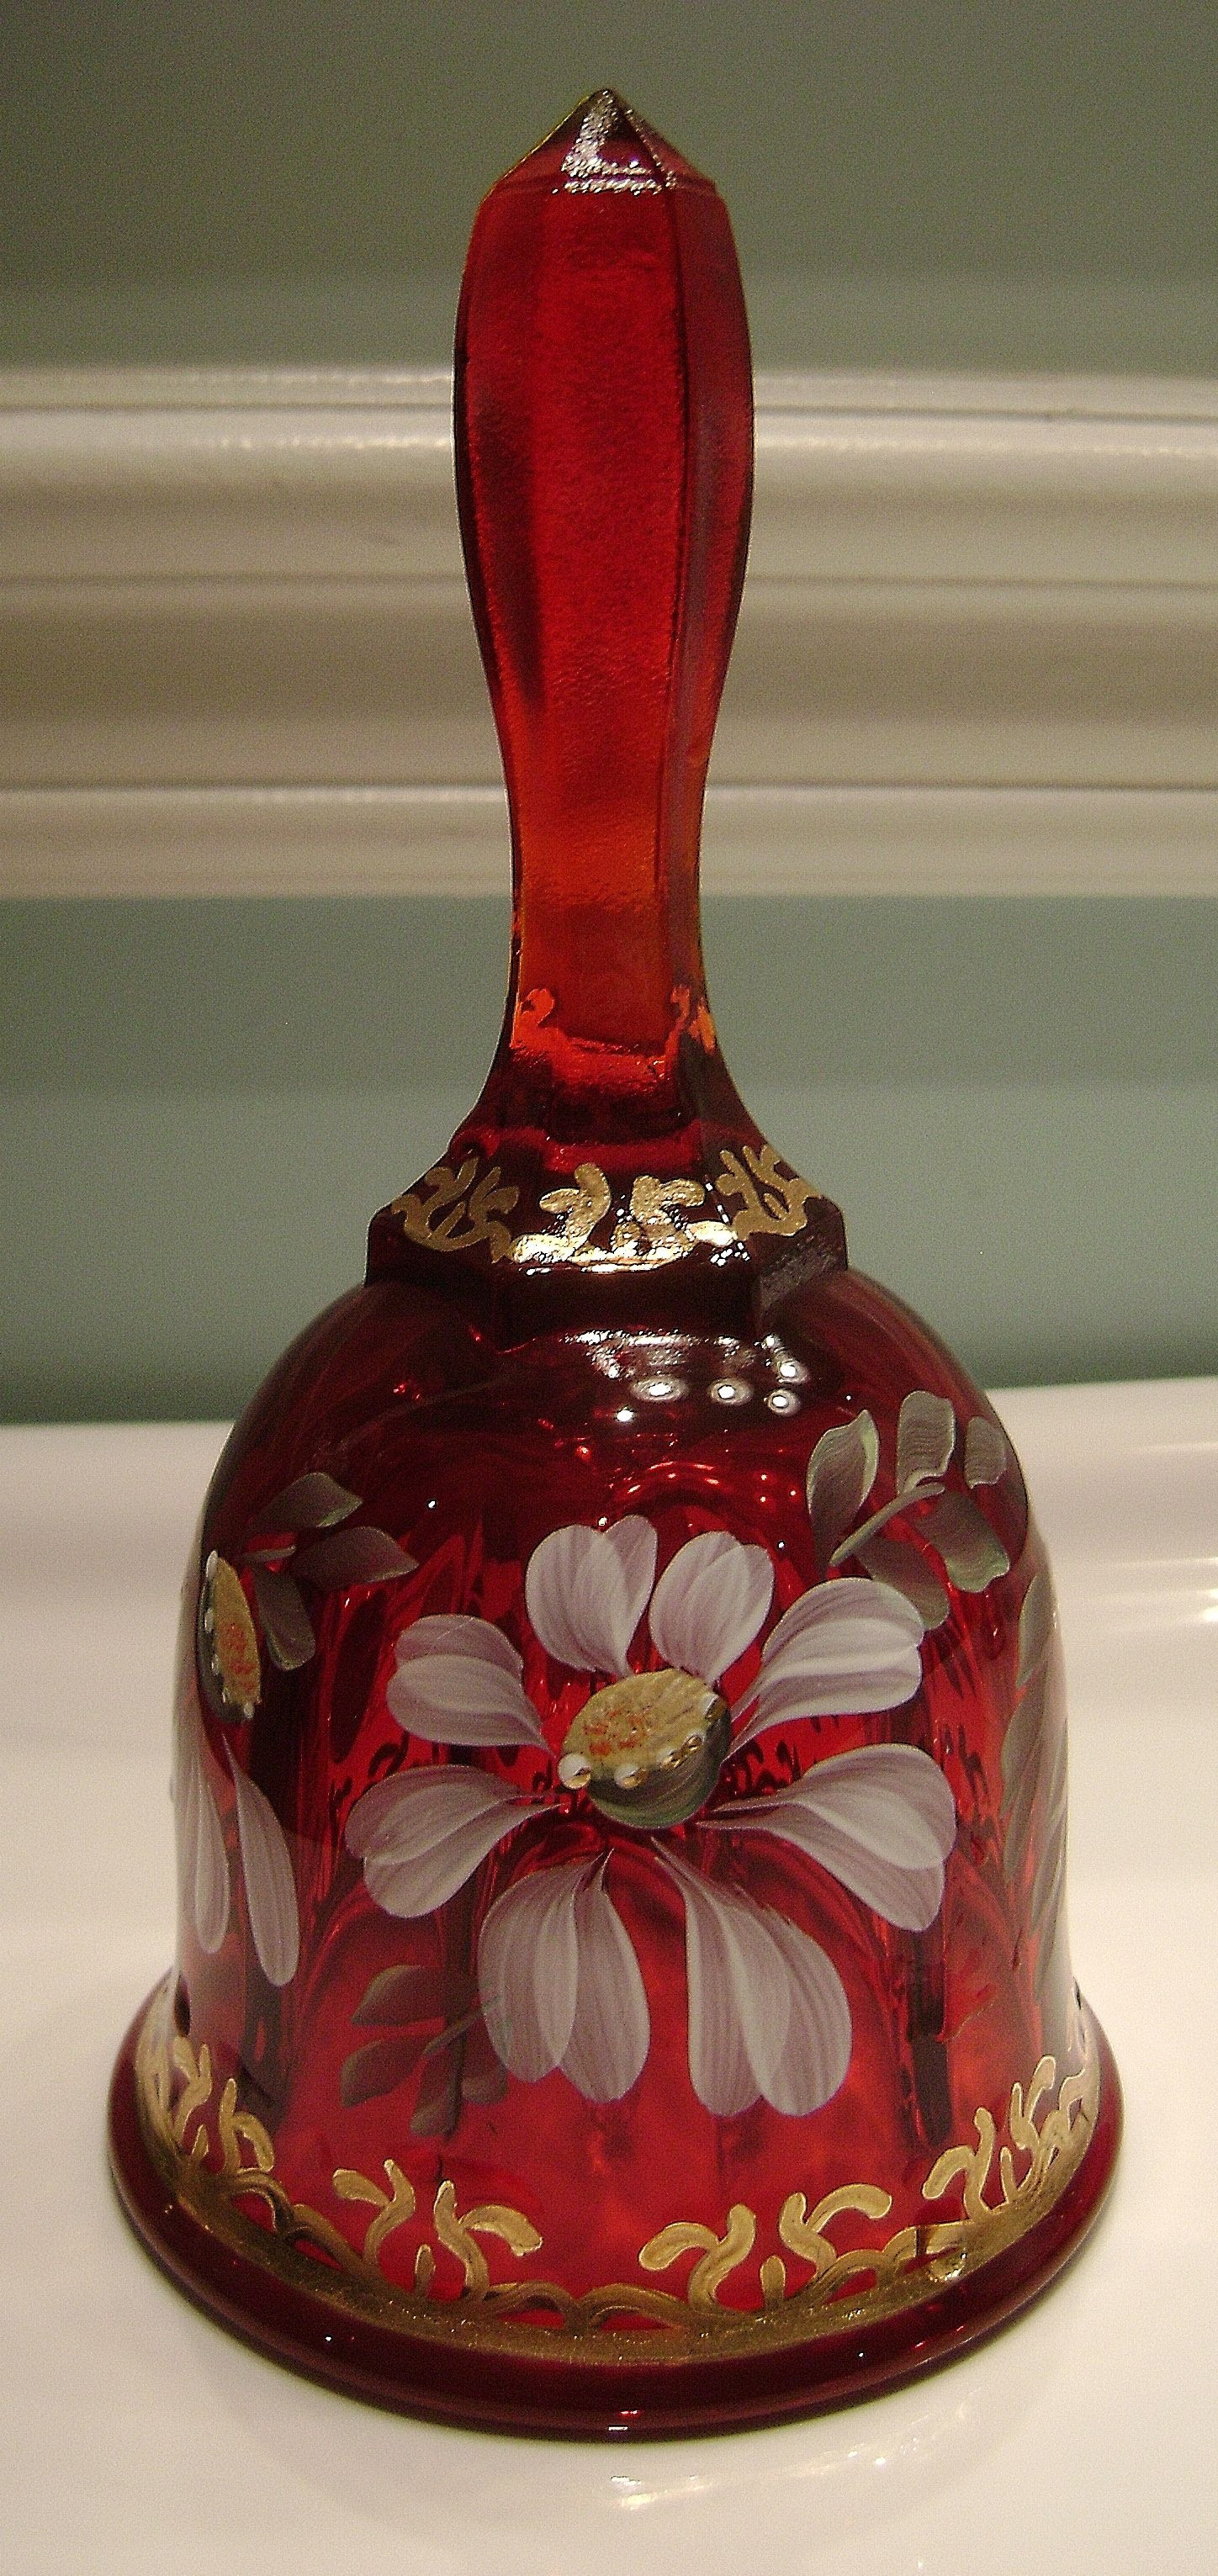 red fenton vase of fenton ruby 22k gold daisy bell sharons lovely fenton glass for fenton ruby 22k gold daisy bell